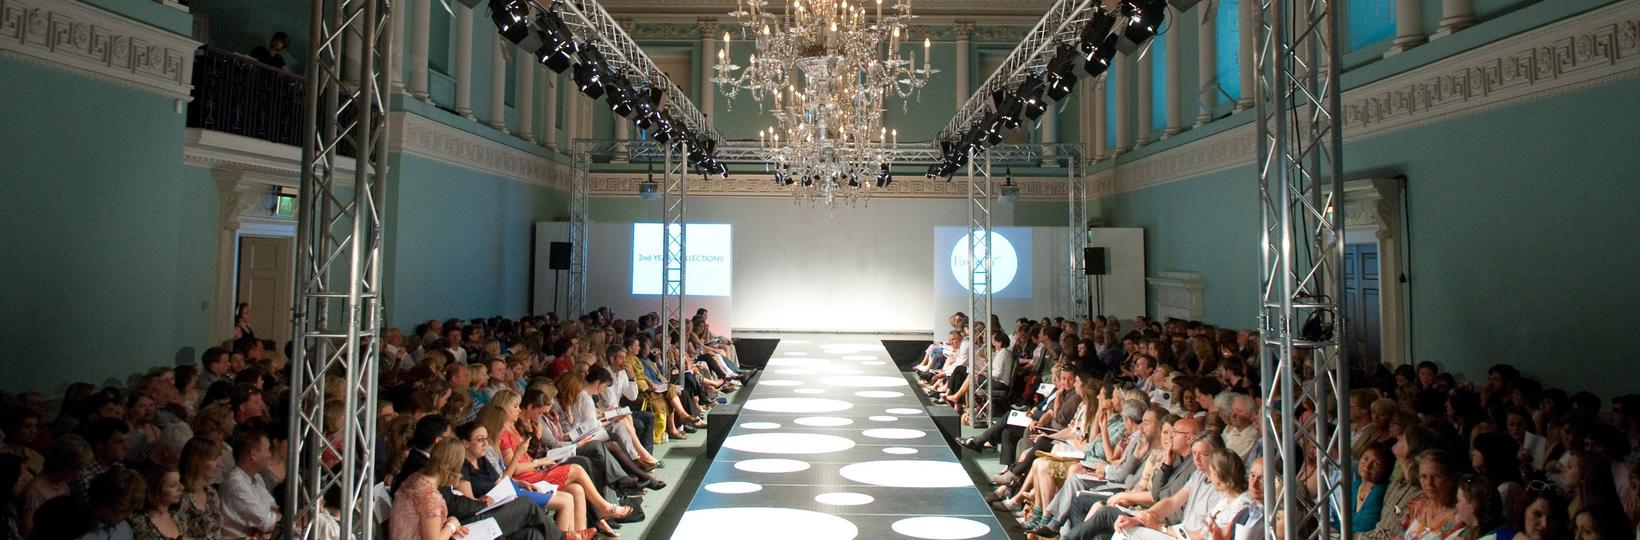 Fashion show in the Ball Room